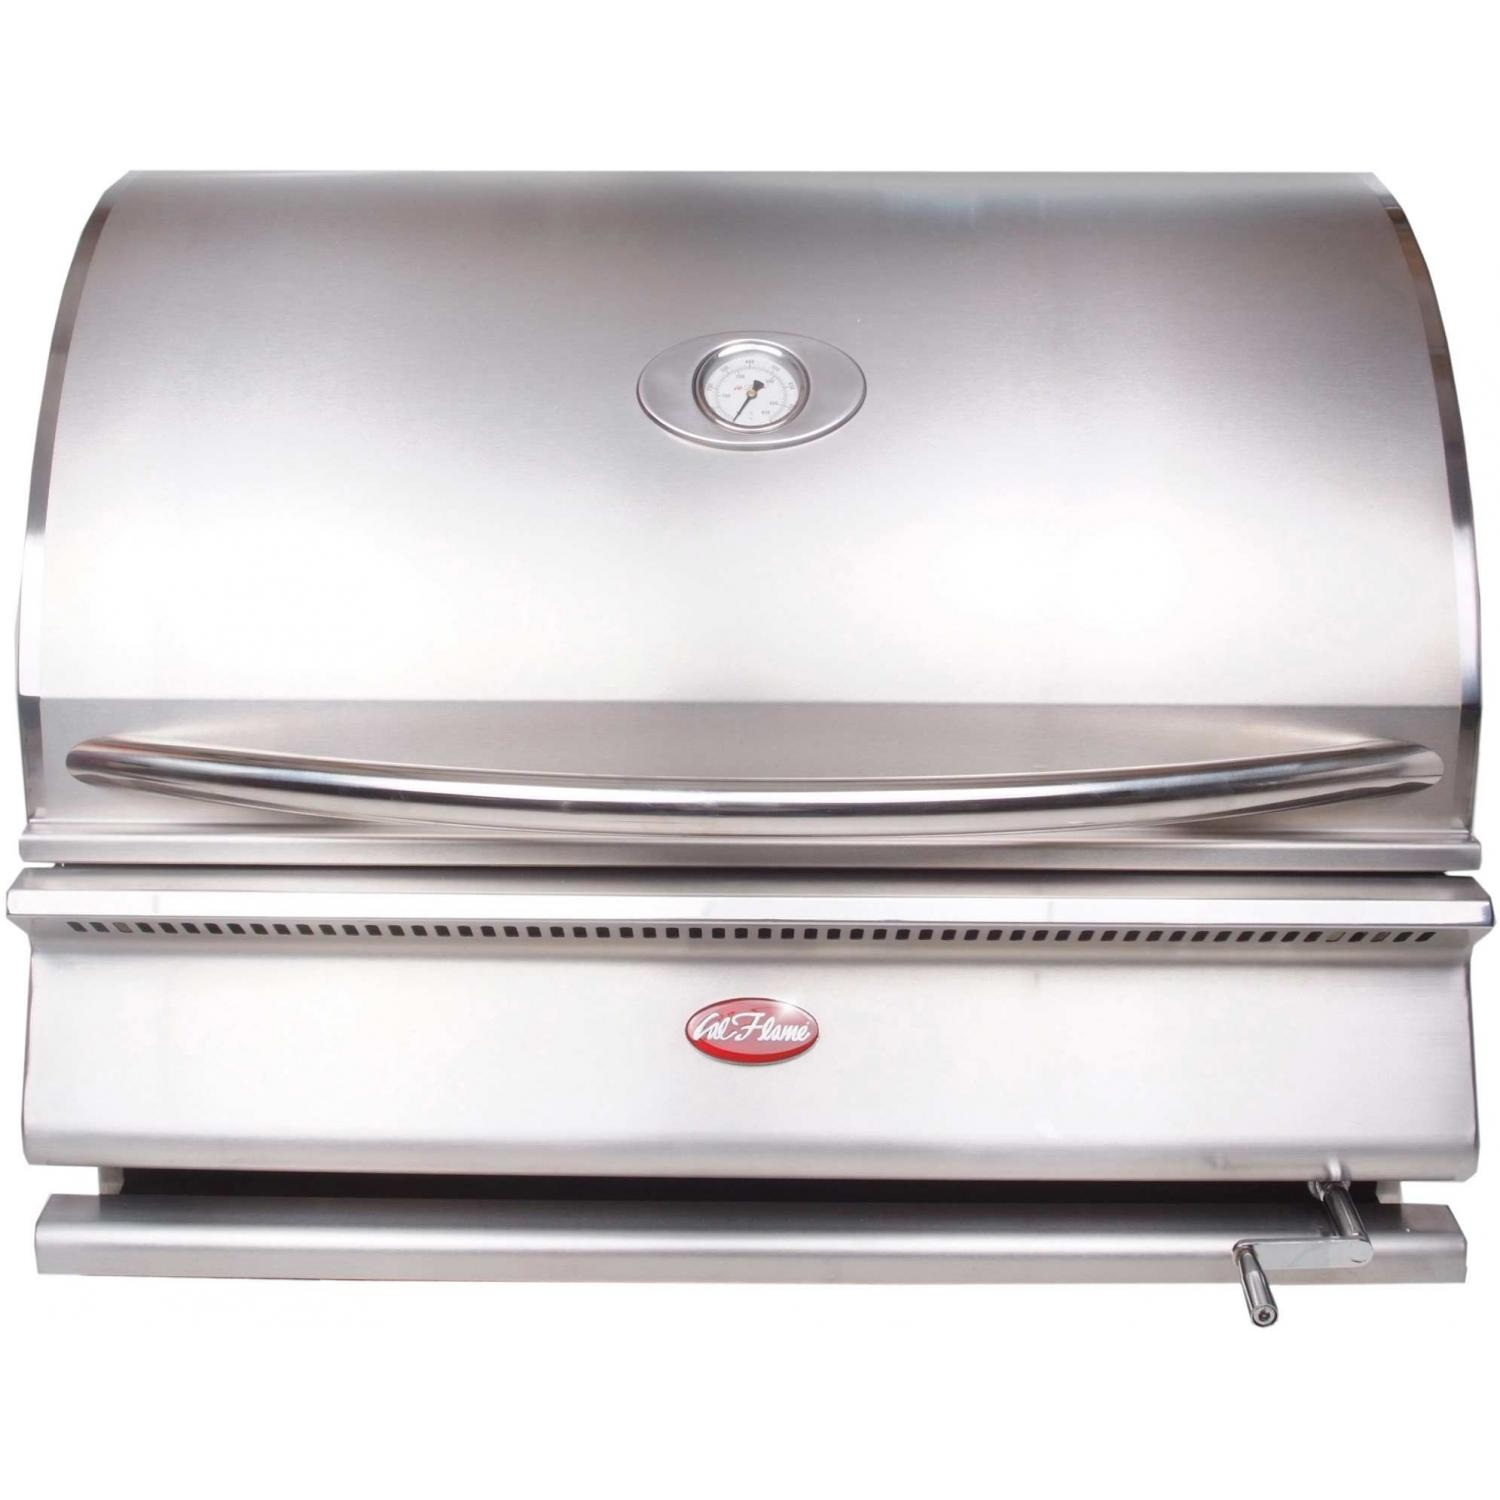 Cal Flame G-charcoal Built-in Charcoal Grill at Sears.com